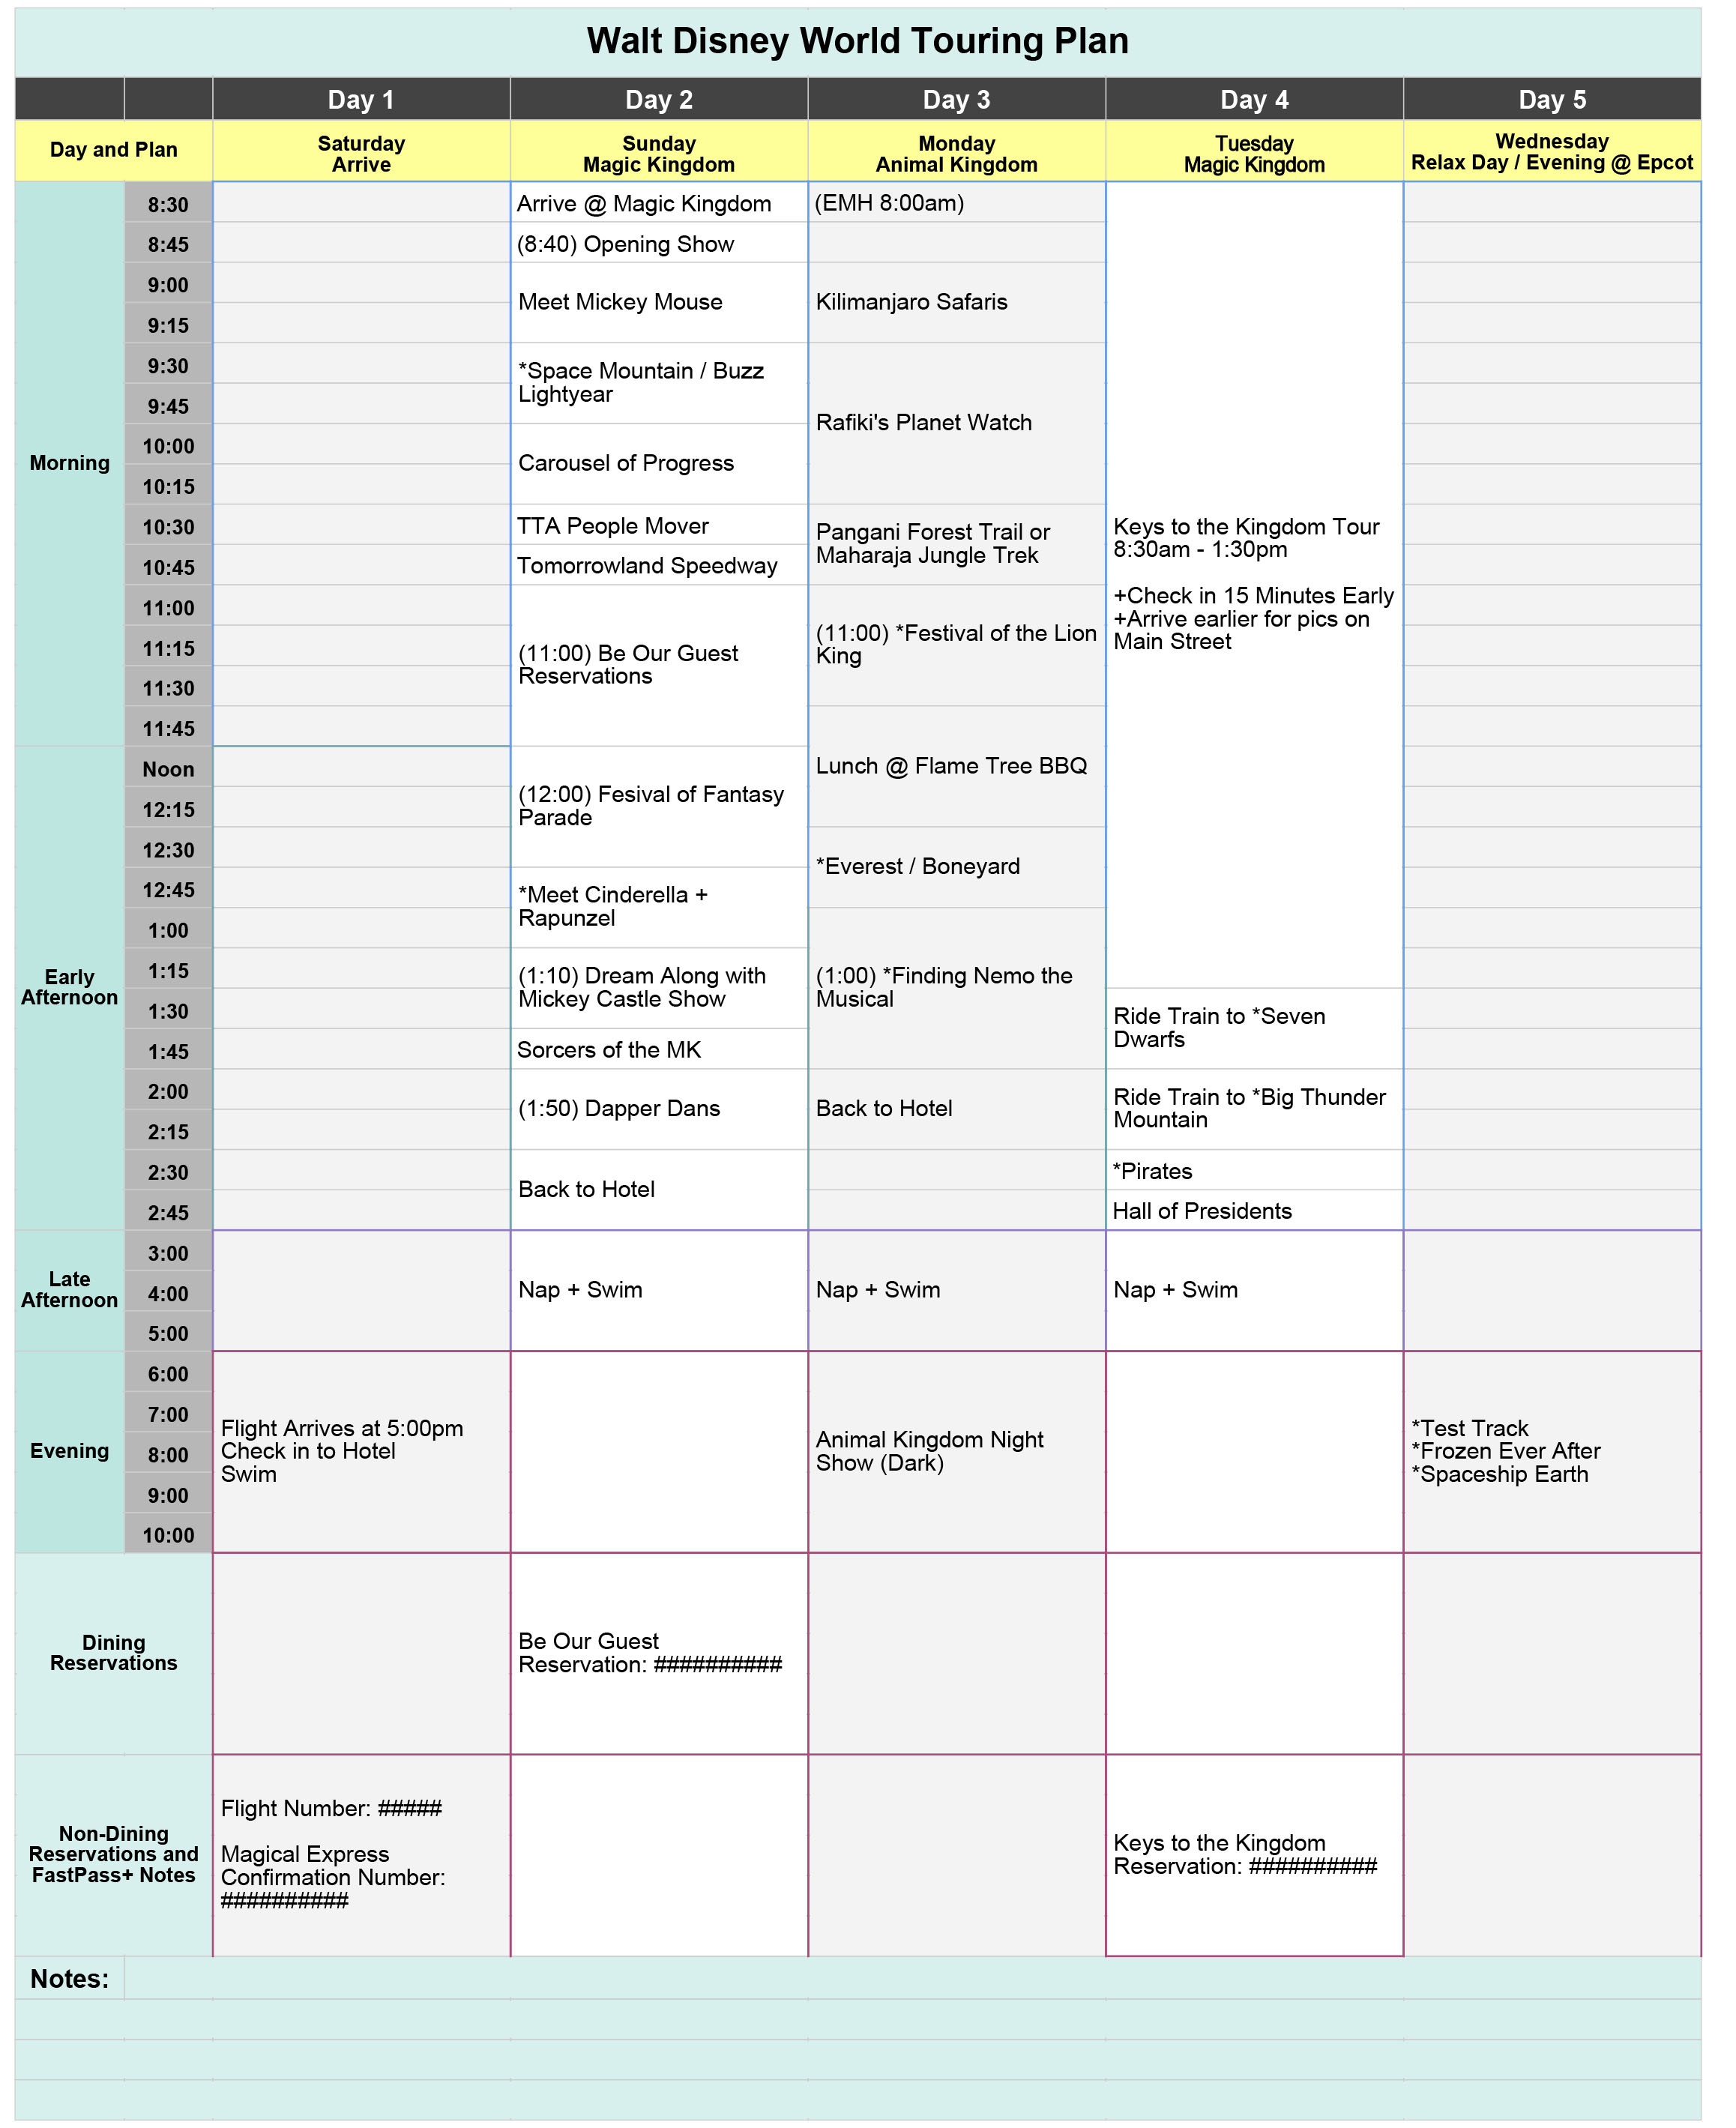 Disney World Planning Guide Spreadsheet Intended For Free Disney World Touring Plan Spreadsheet  Wit  Wander